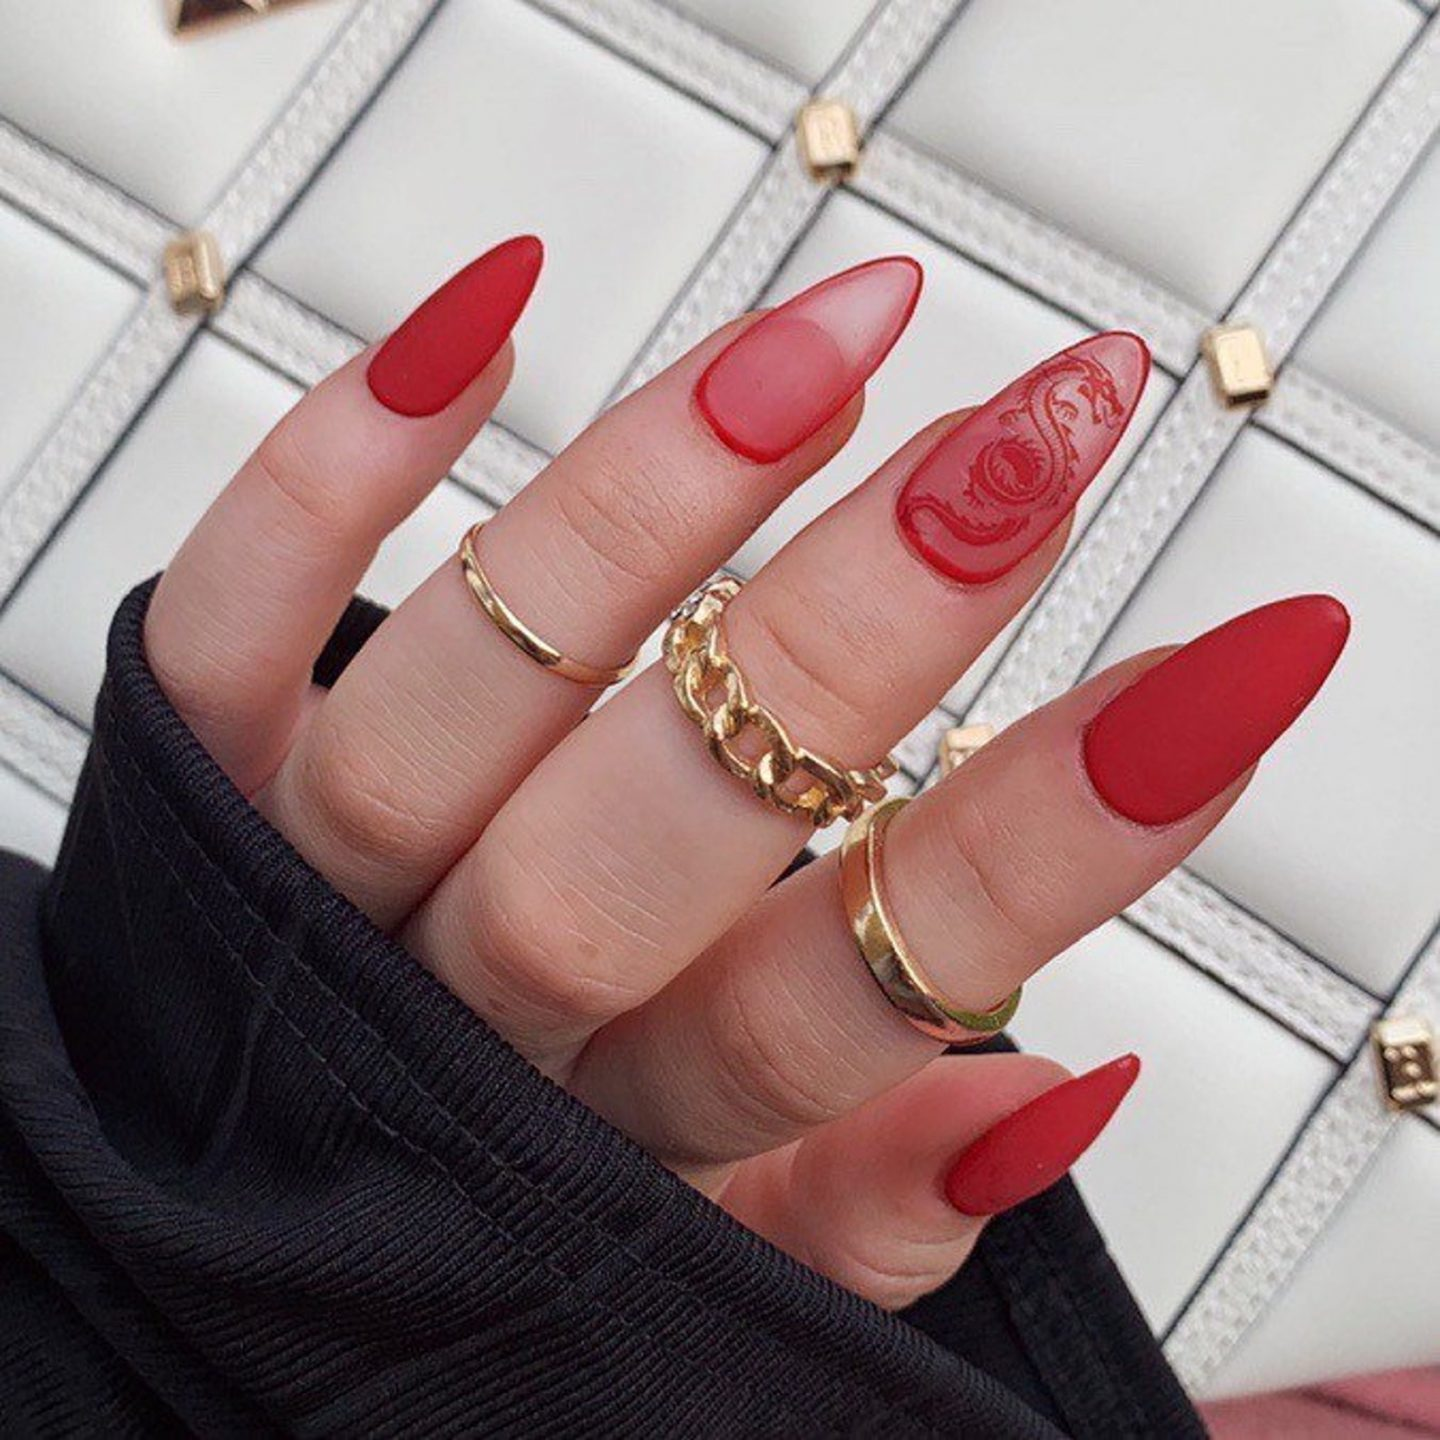 Matte red nails with dragon nail art for Chinese New Year